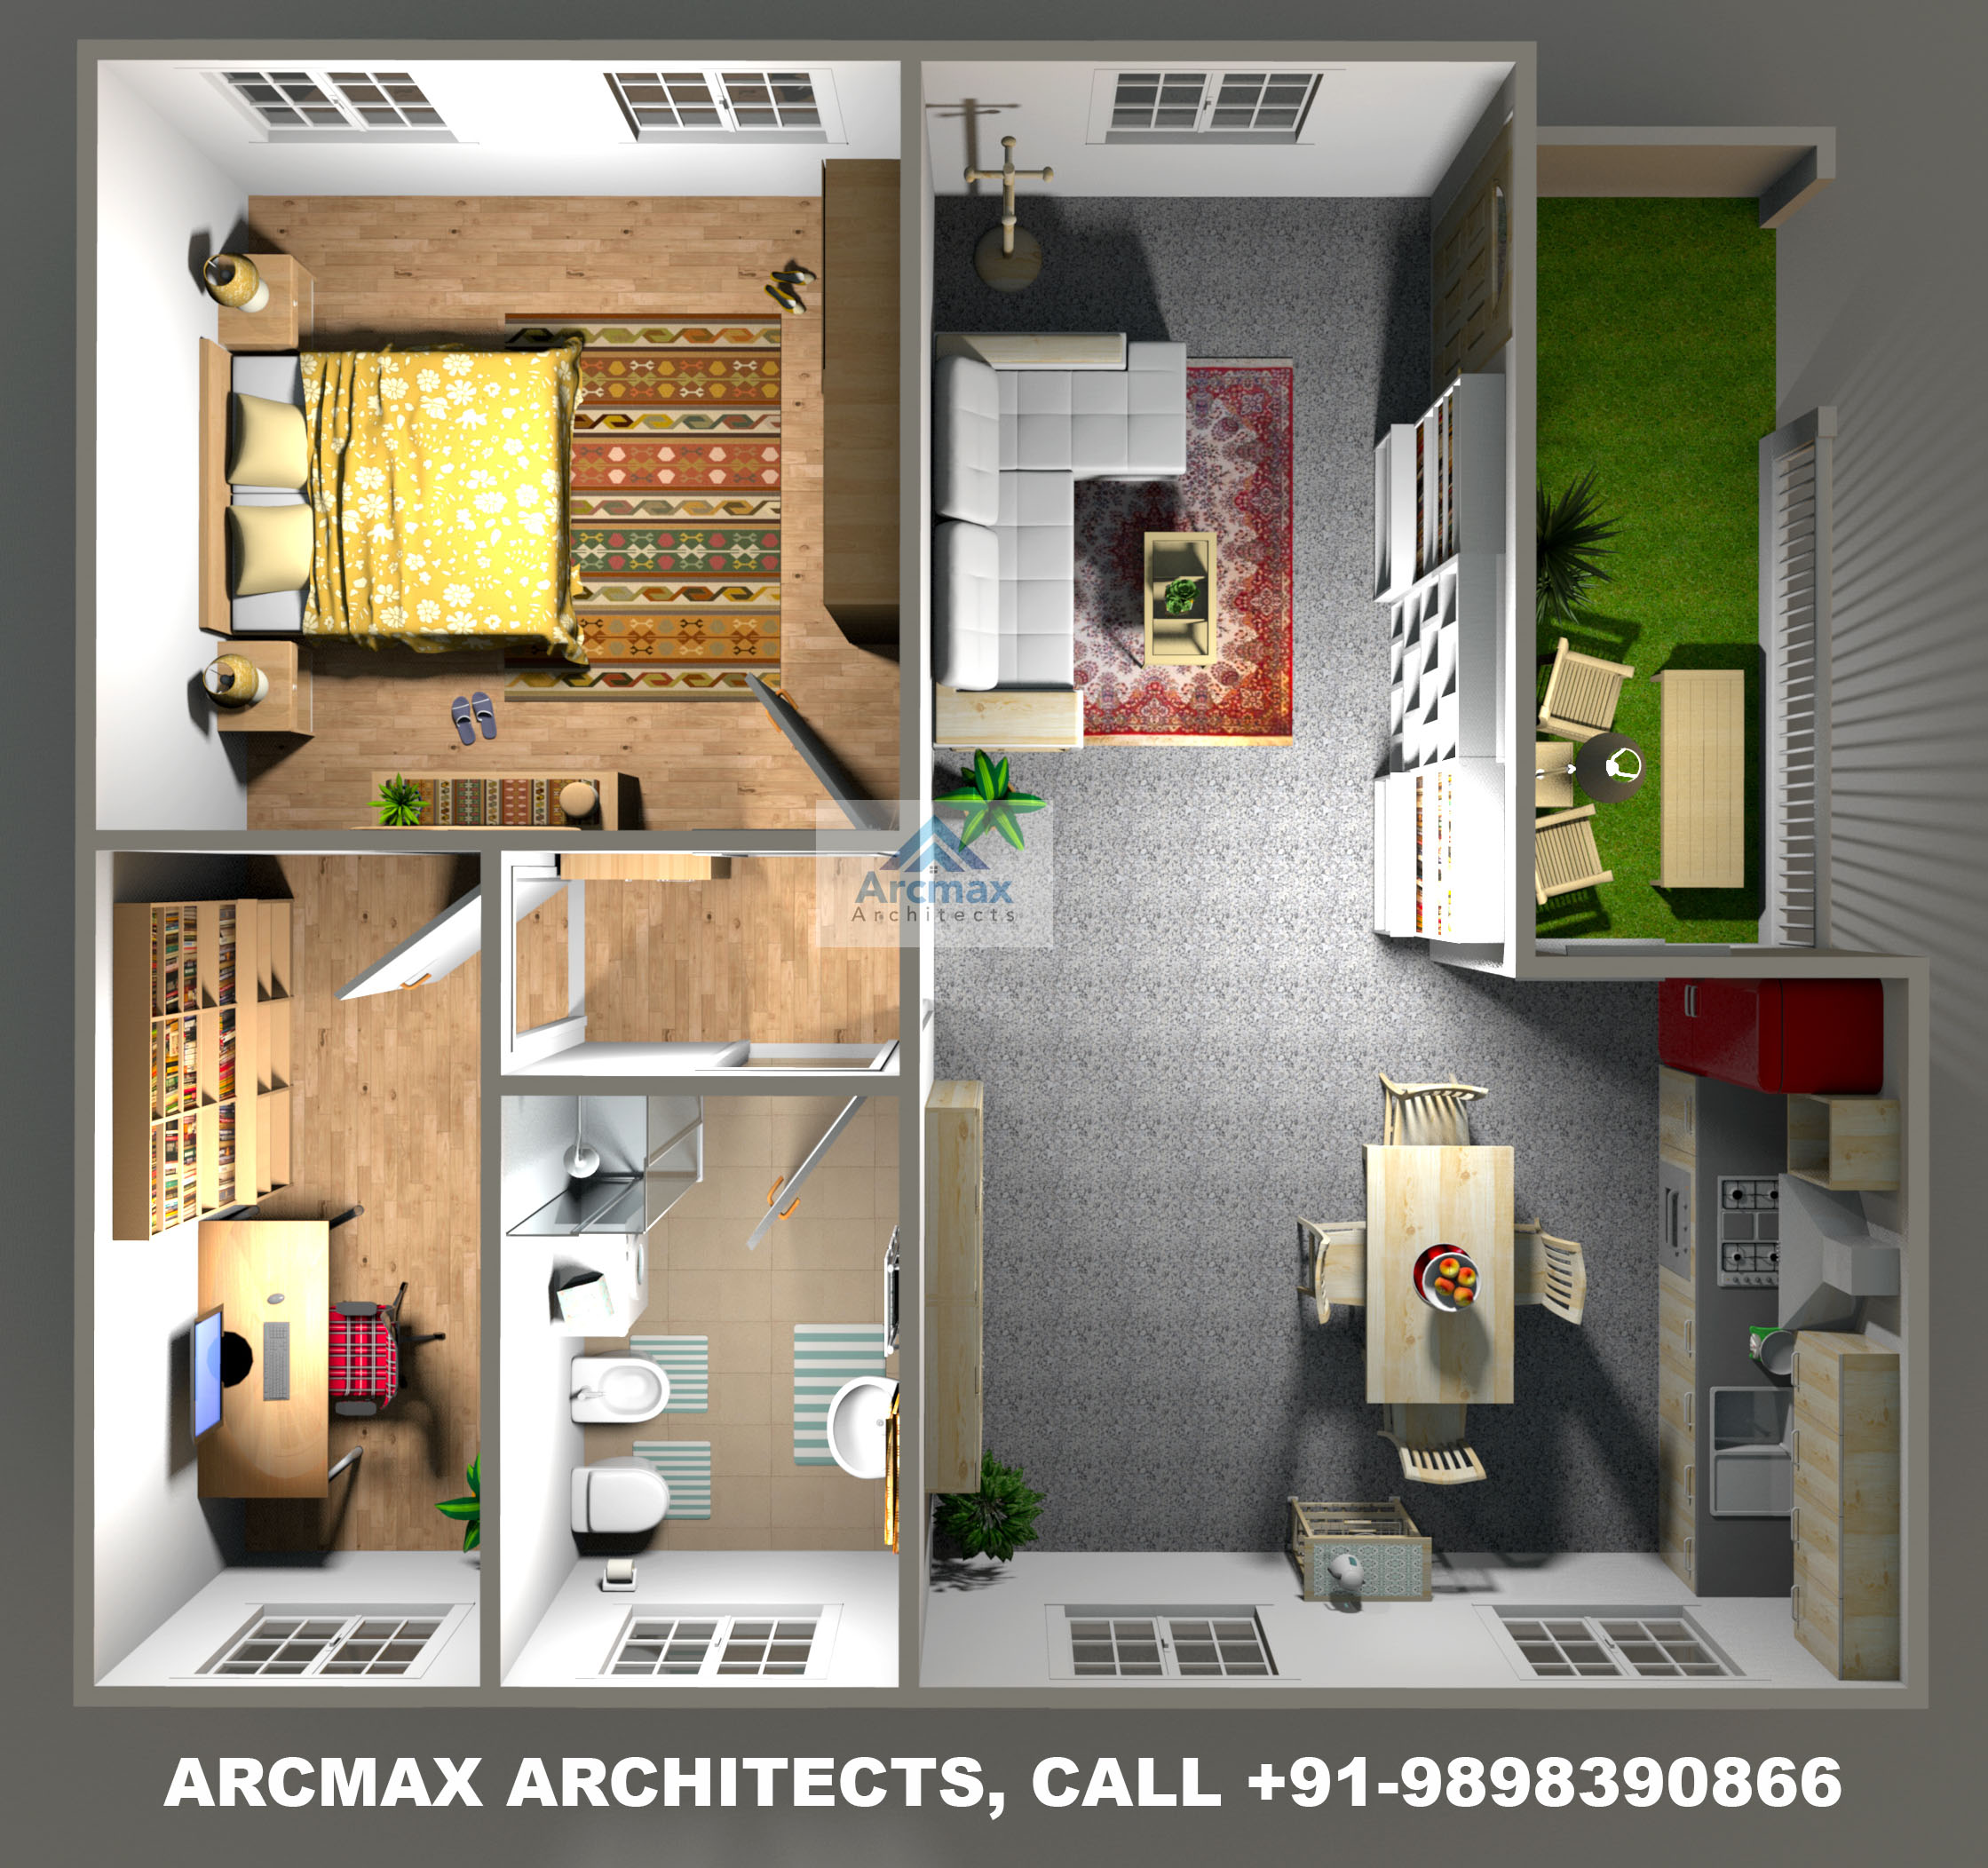 Low Cost Housing Design & Home Plans - Arcmax Architects ...